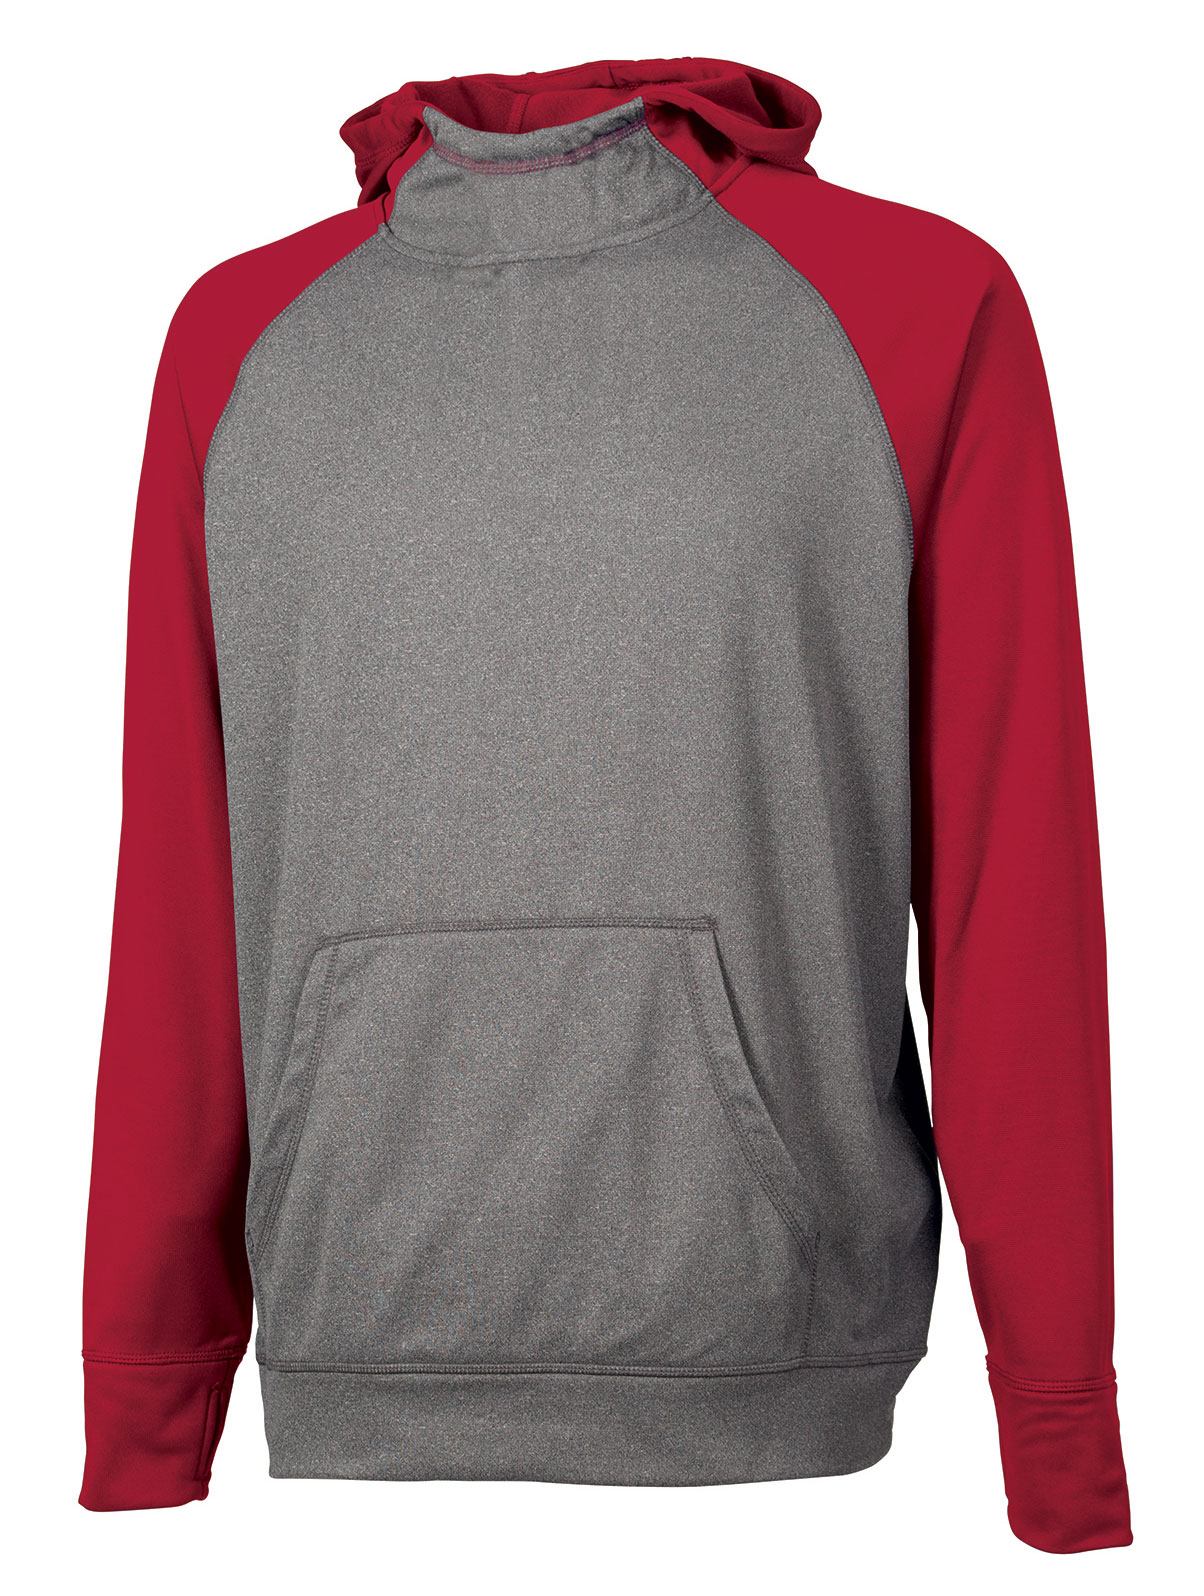 Youth Field Sweatshirt